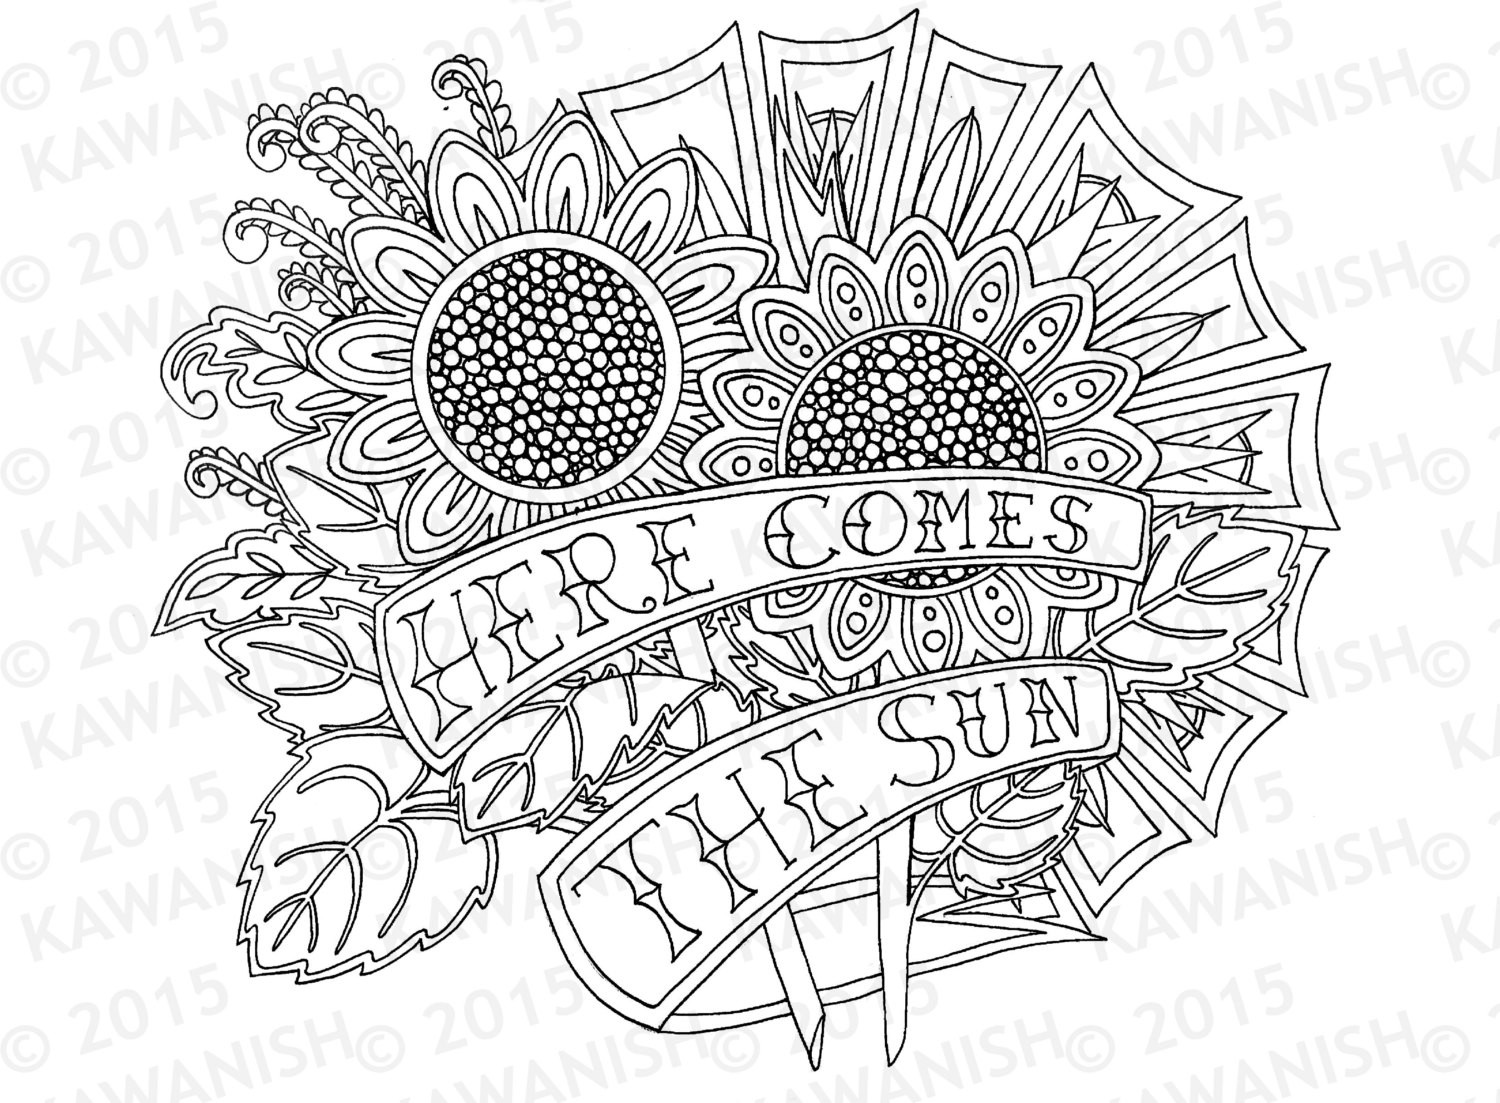 Sunflower Coloring Pages For Adults  The gallery for Sunflowers Coloring Pages For Adults